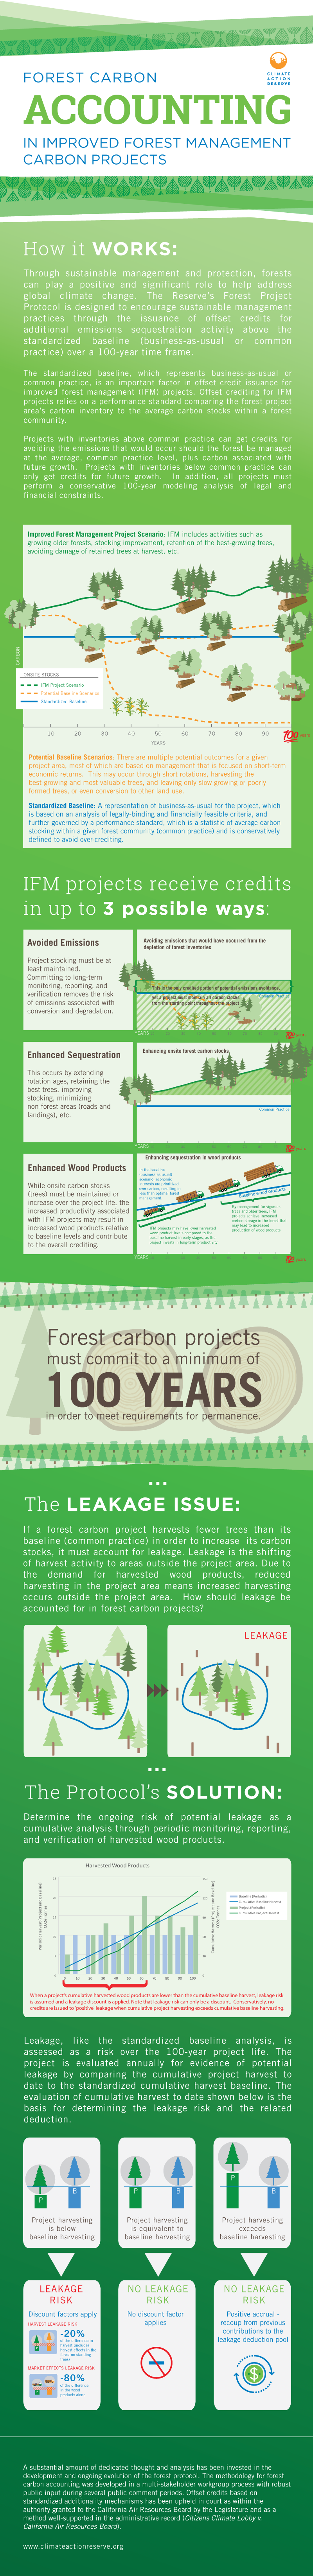 Forest Carbon Accounting for IFM Projects : Climate Action